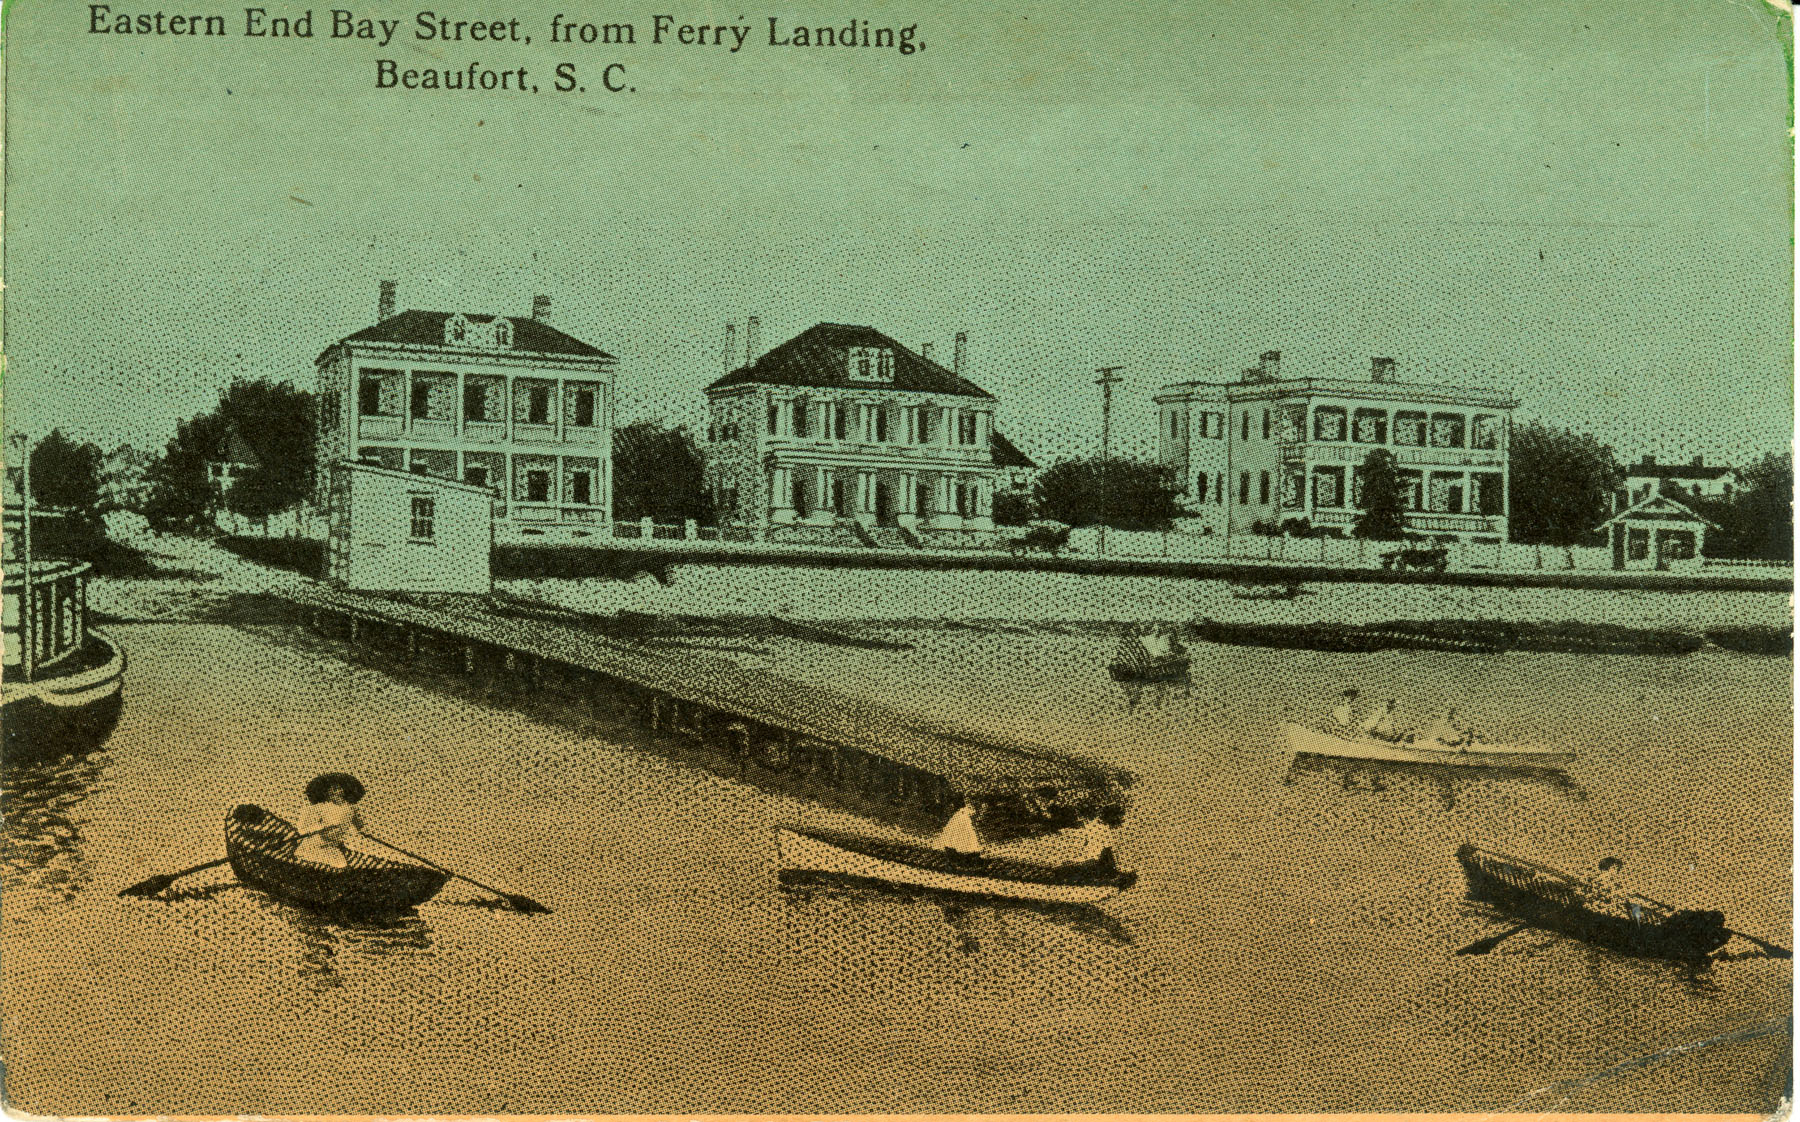 Bay Street from Ferry Landing in Beaufort